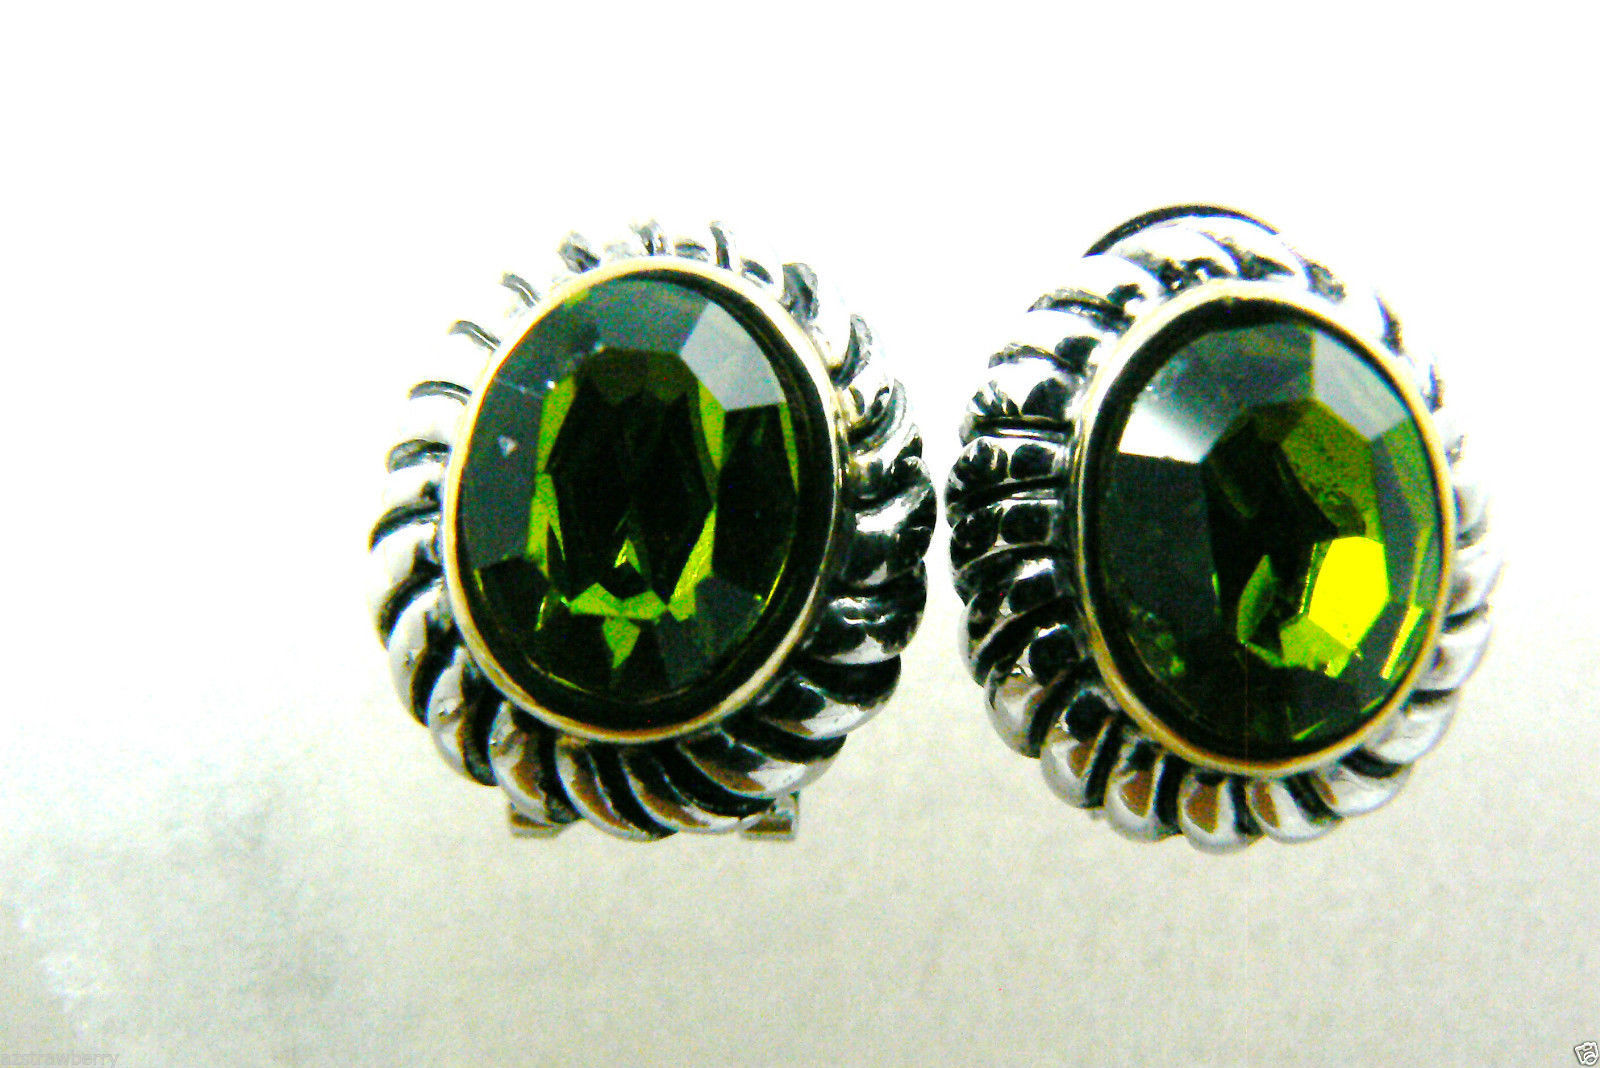 Silver tone Faceted Green Rhinestone crystal oval stud earrings $0 sh new image 2